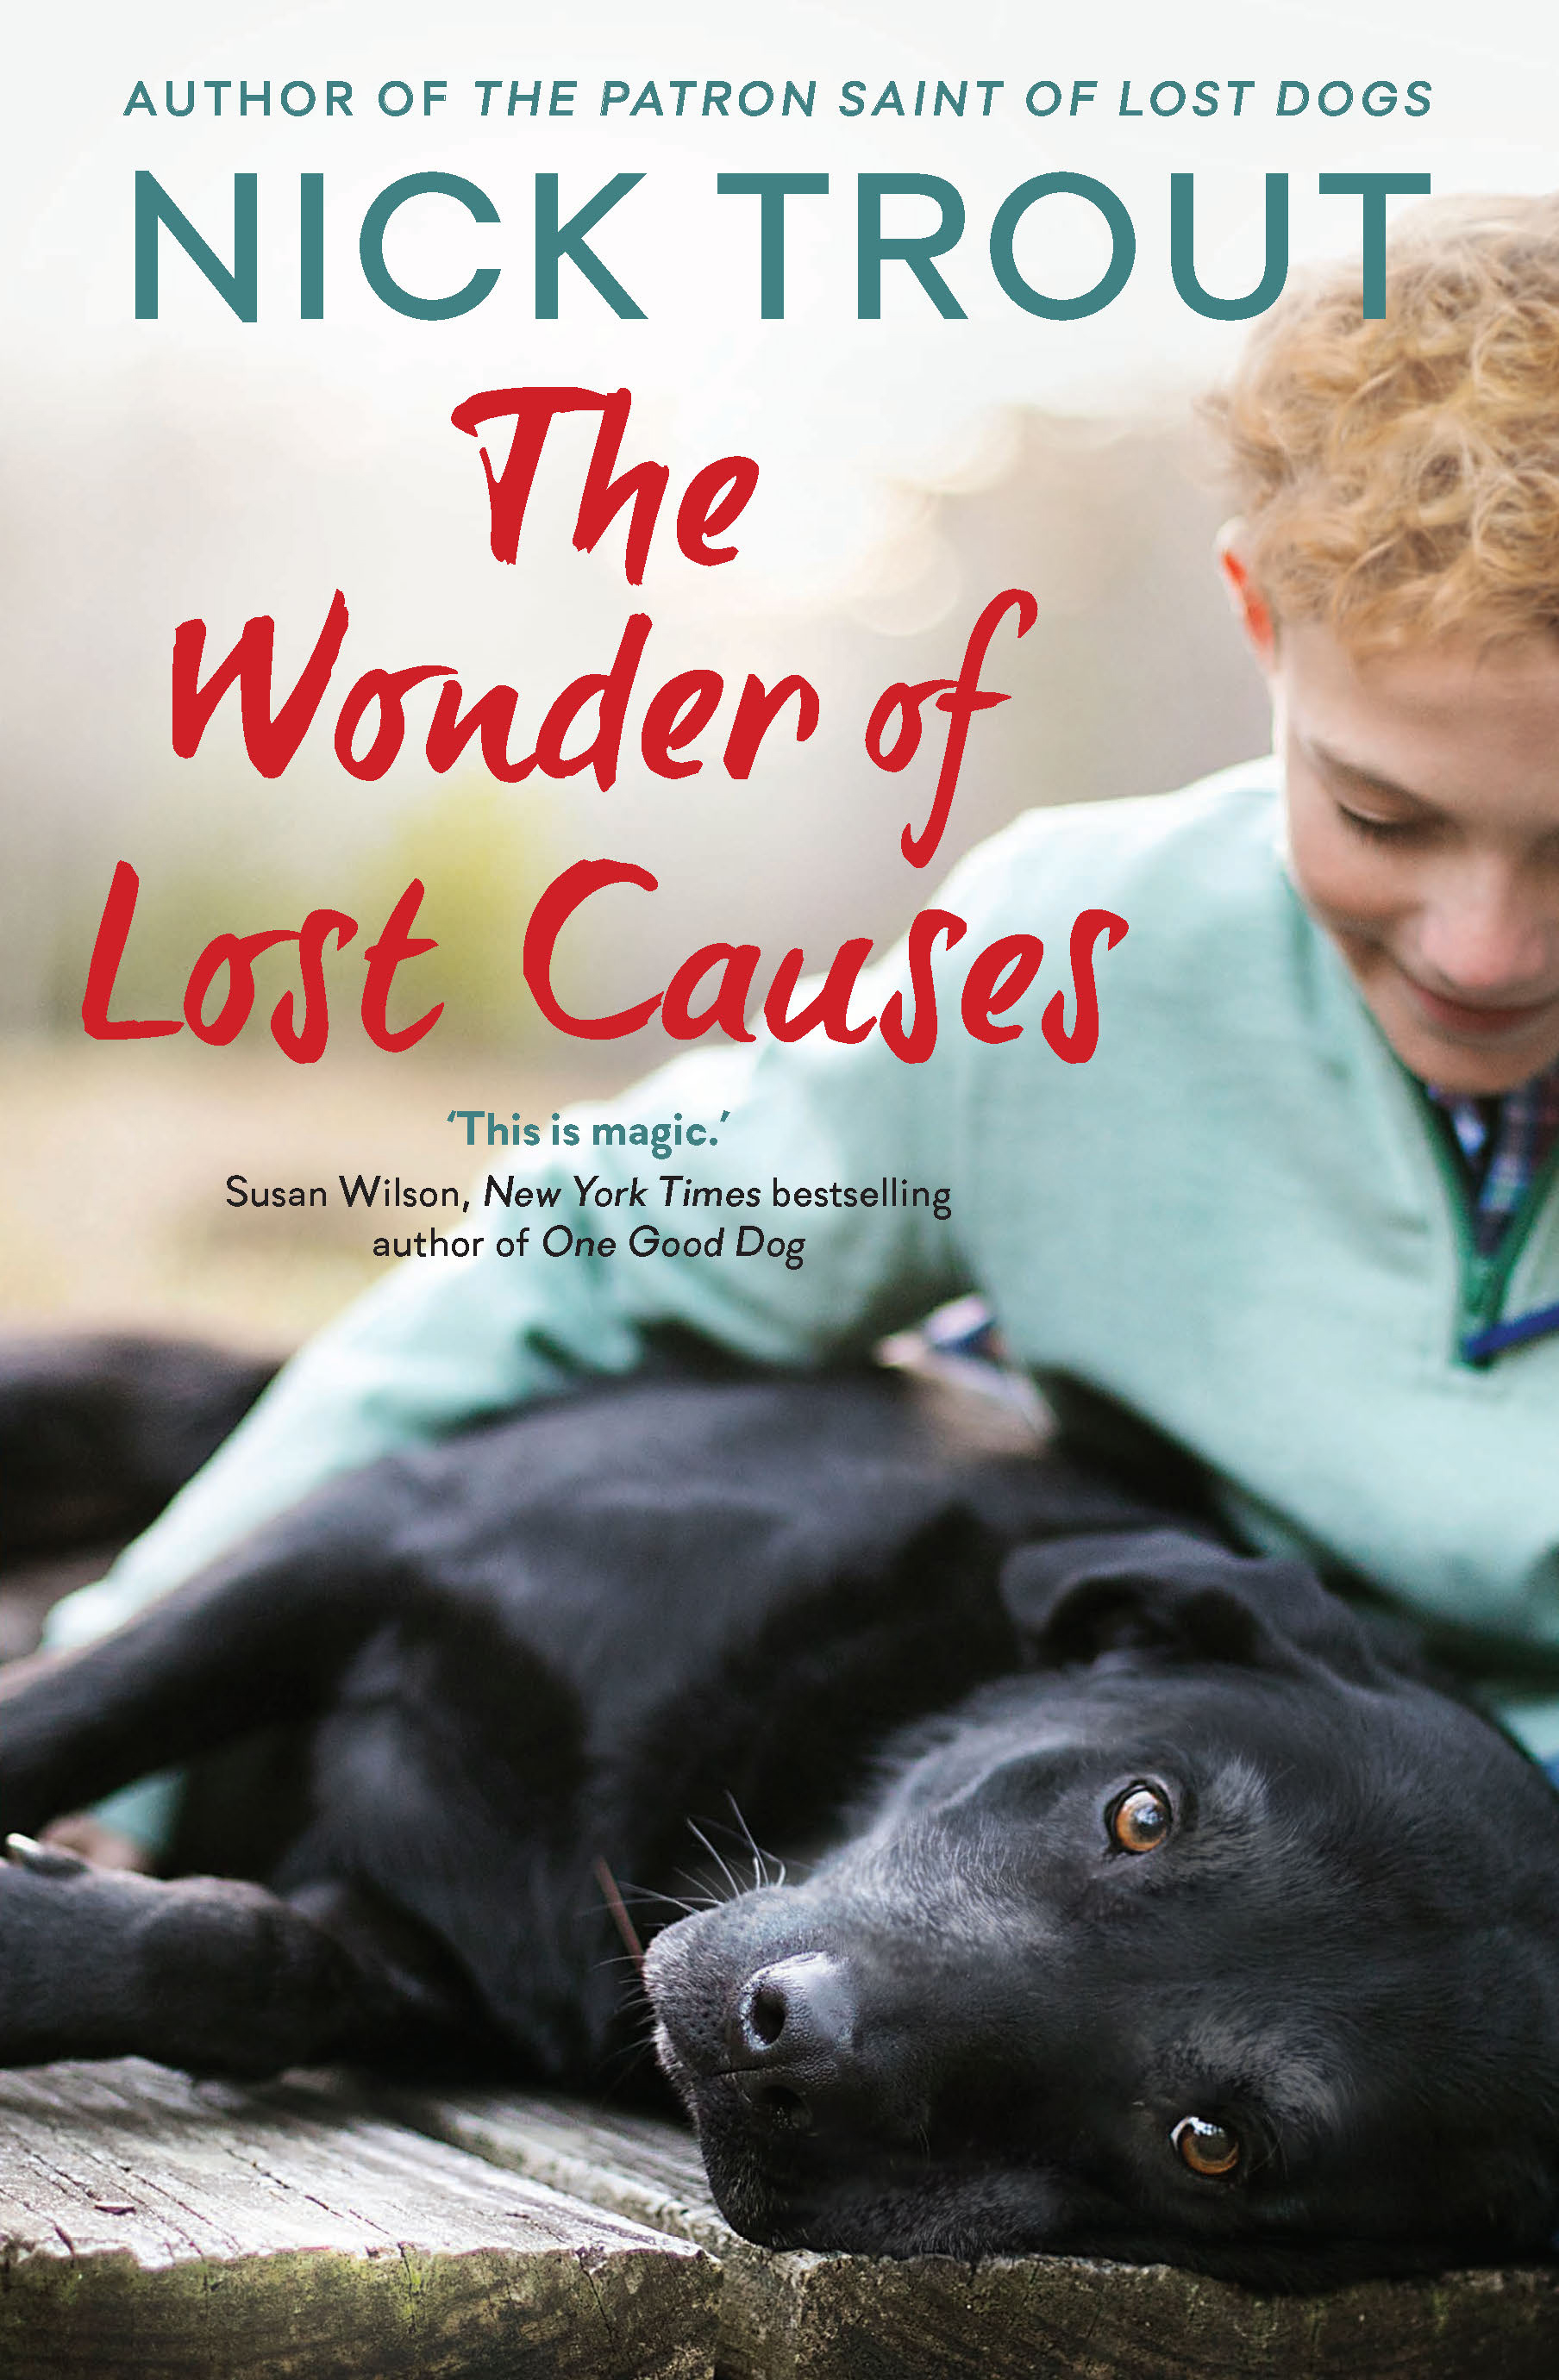 The Wonder of Lost Causes - Nick Trout - 9781760527884 - Allen